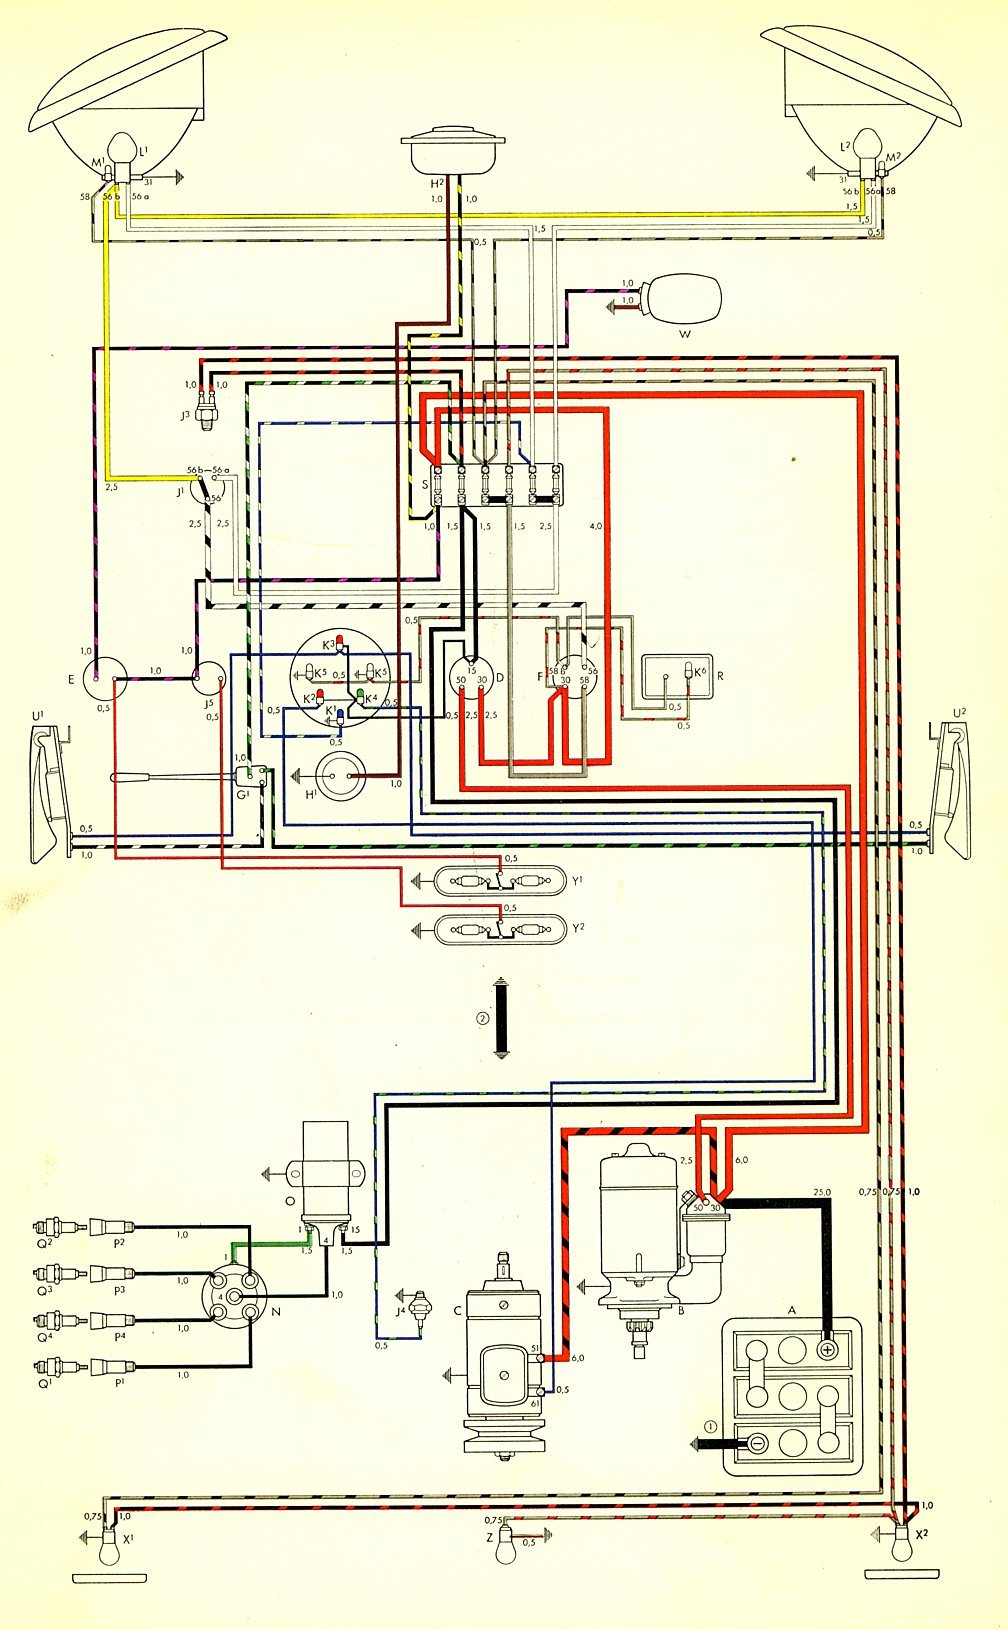 bus_59 wiring diagram for 1971 vw bus readingrat net 1978 vw bus fuse box diagram at bayanpartner.co